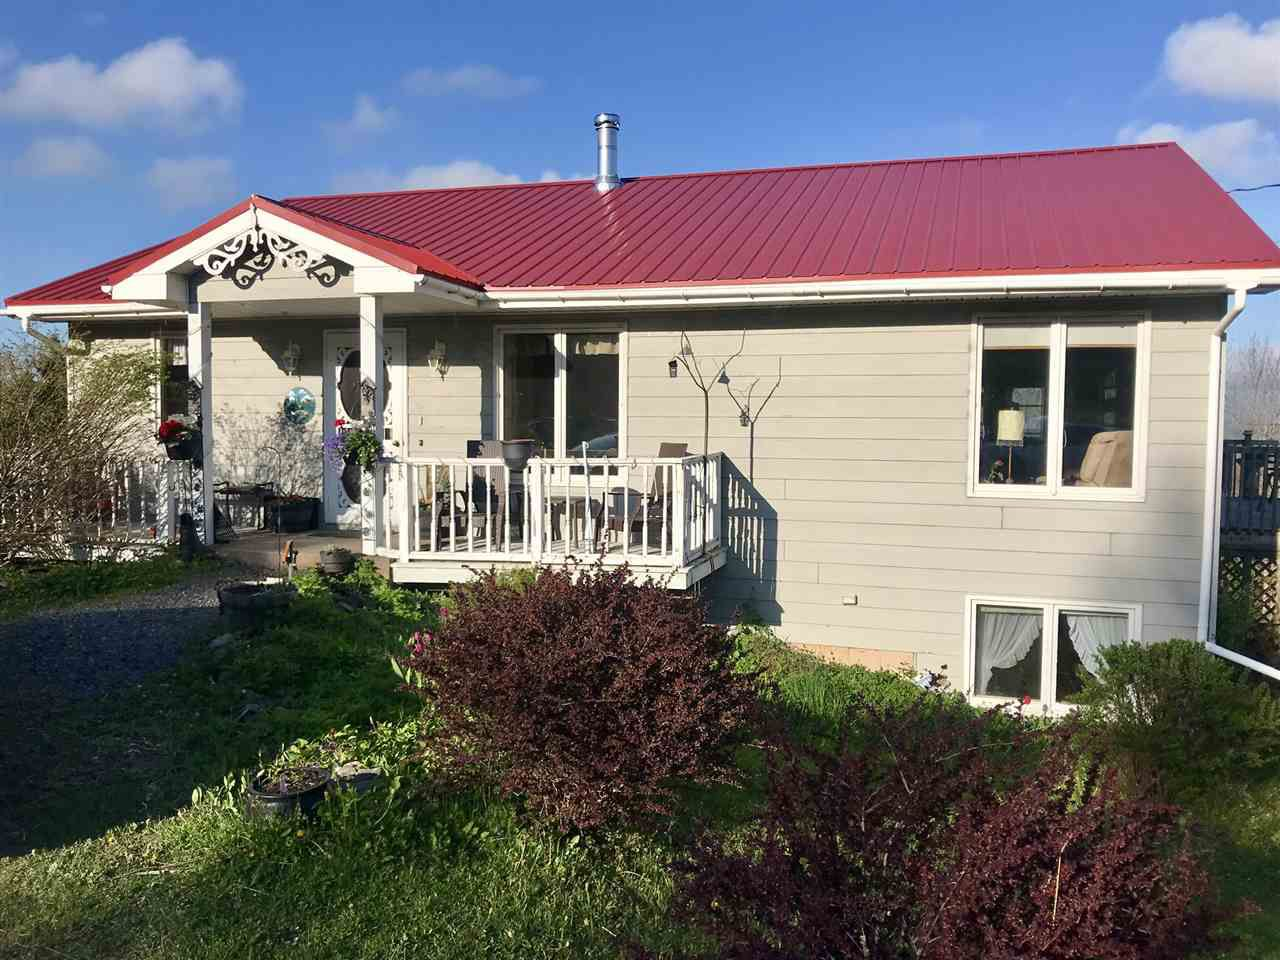 Main Photo: 180 Limerock Road in Millbrook: 108-Rural Pictou County Residential for sale (Northern Region)  : MLS®# 201913297